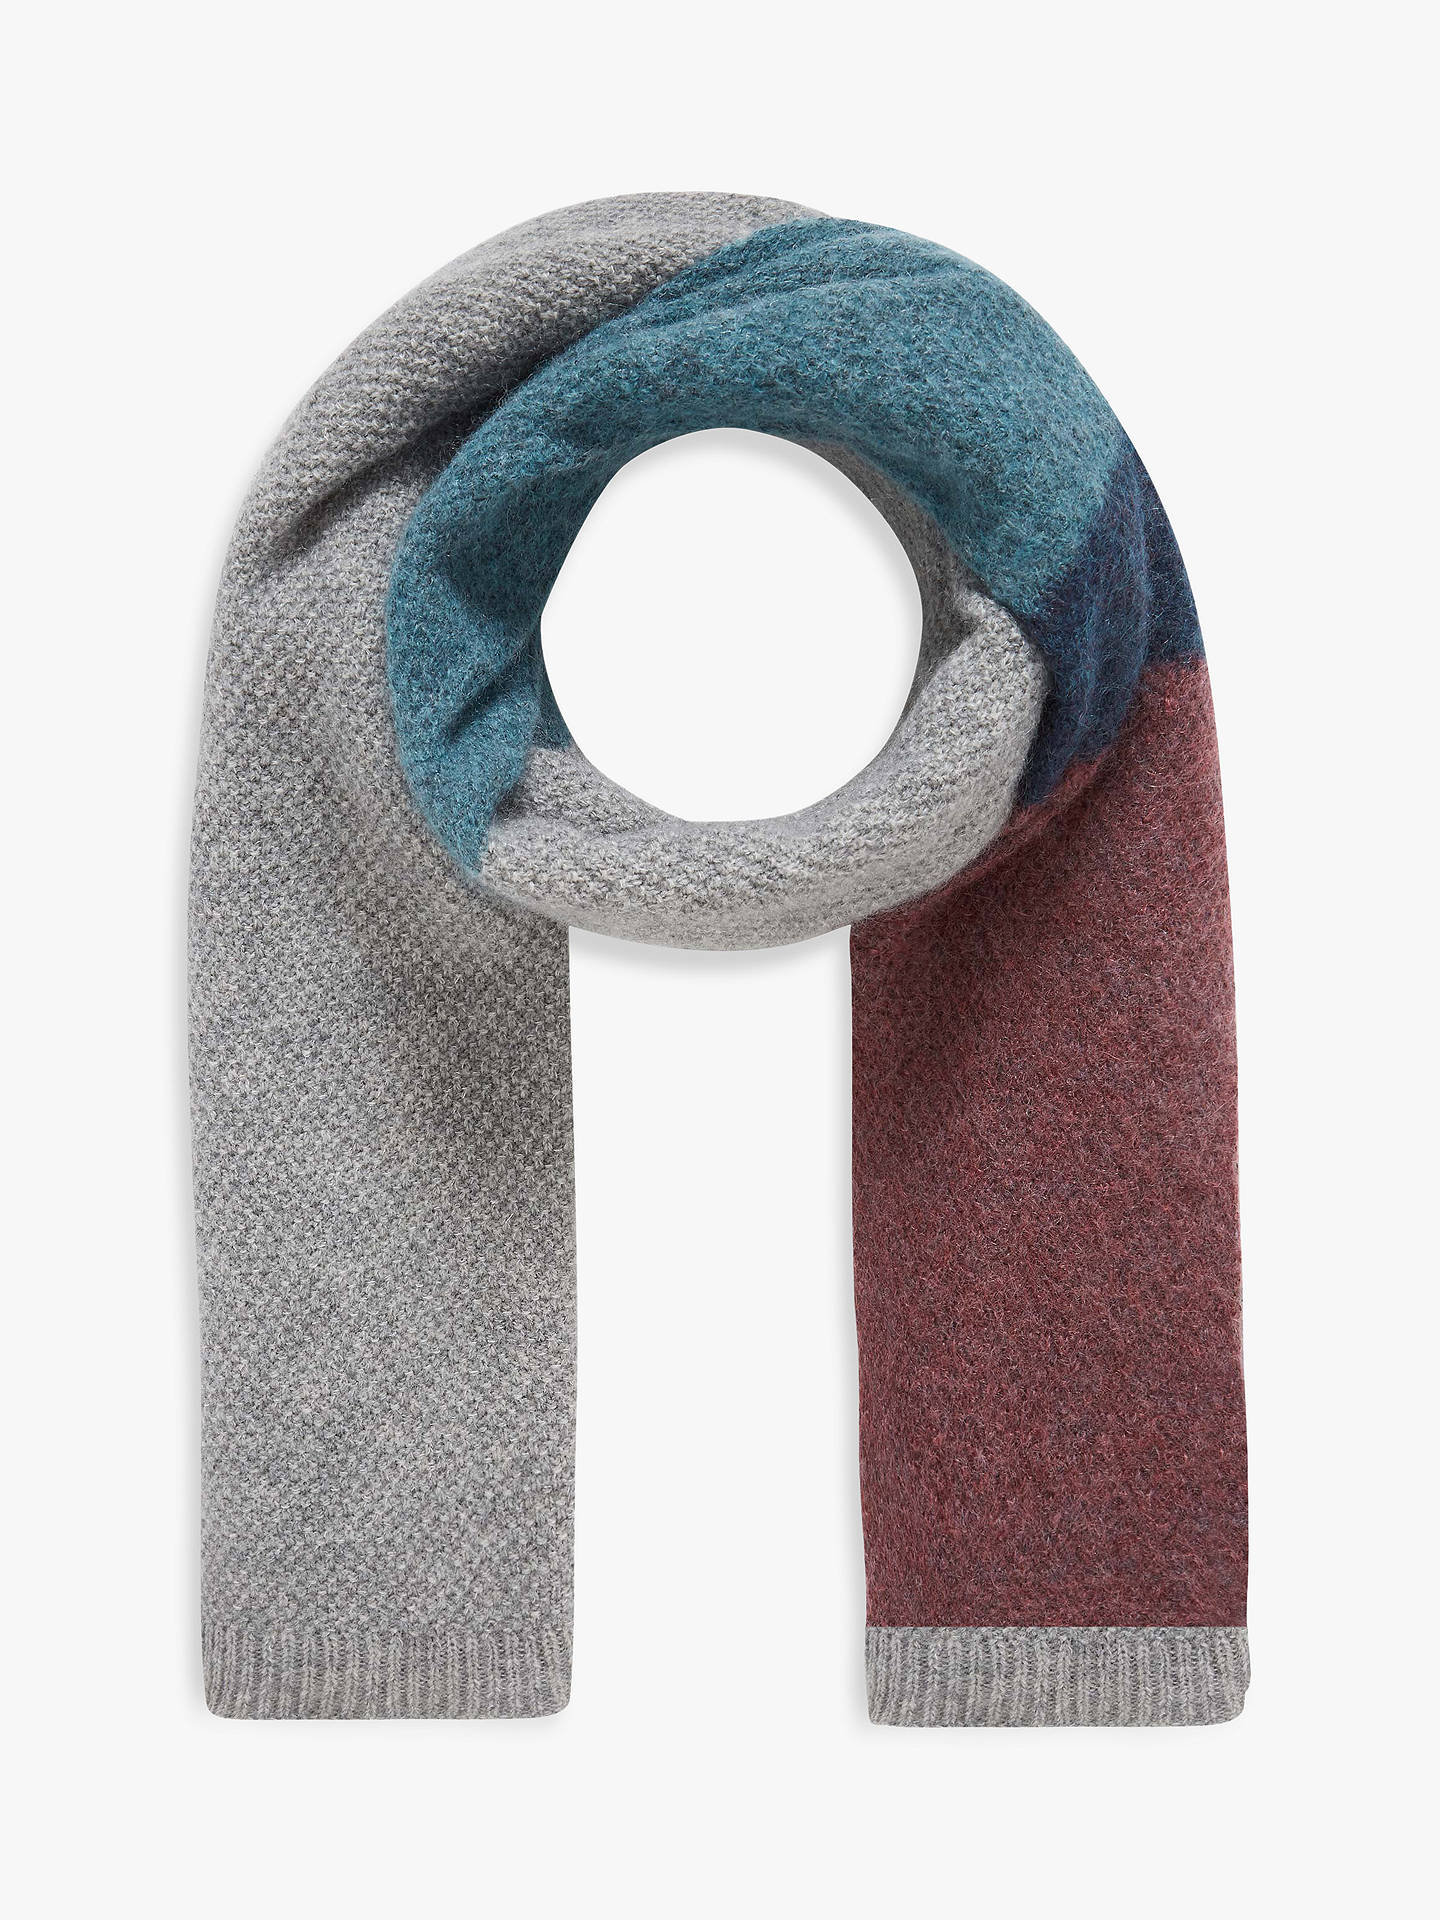 BuyBrora Wool Blend Colour Block Scarf, Silver, One Size Online at johnlewis.com